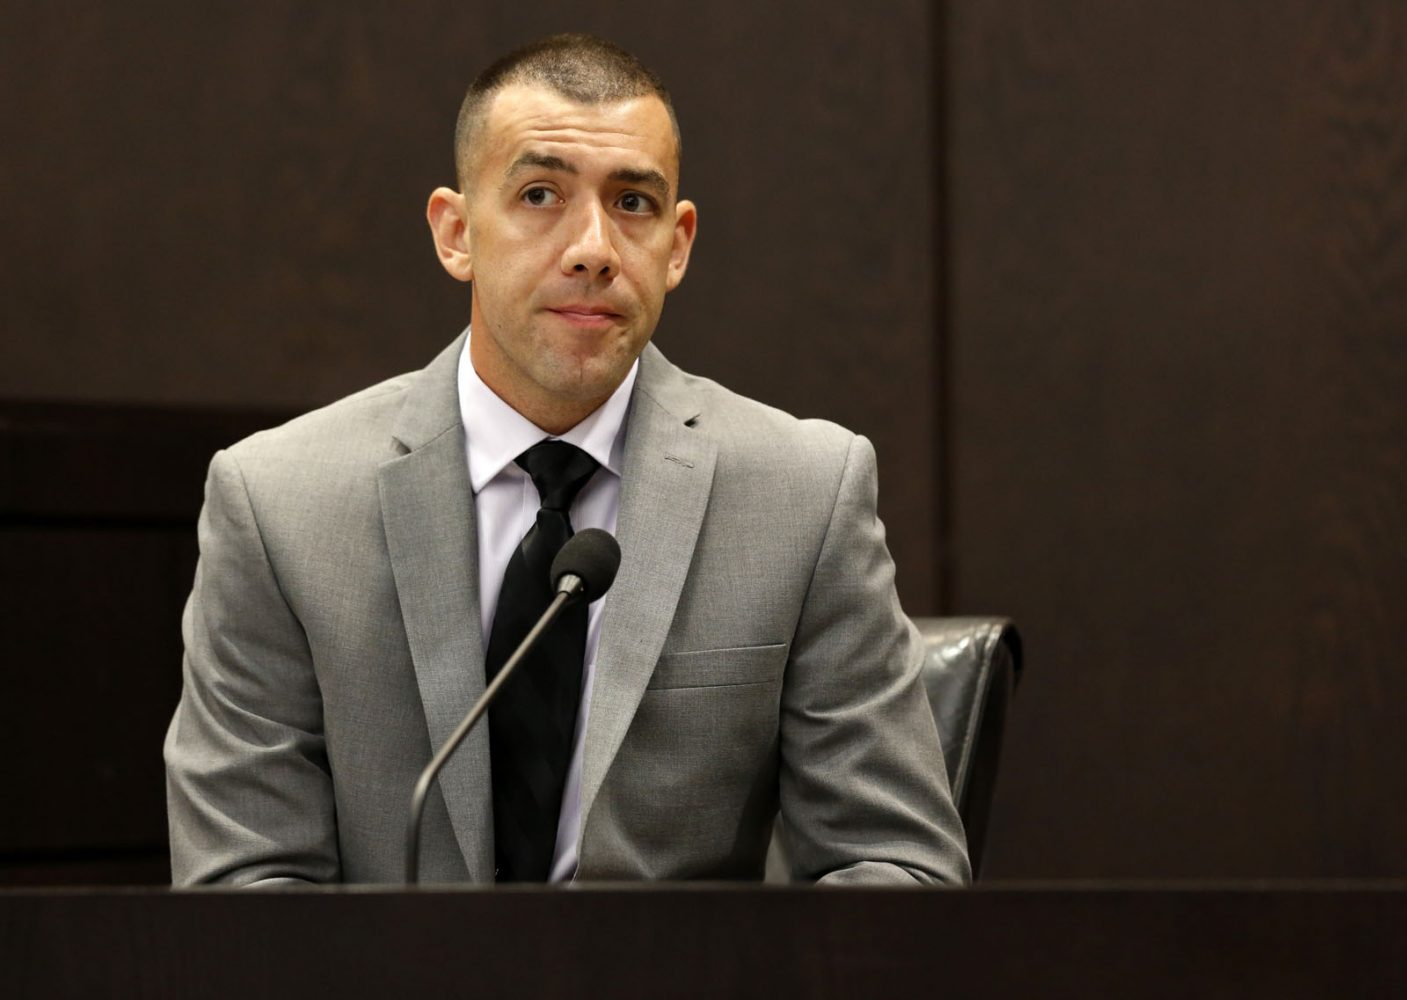 Christopher King, a detective with Gainesville Police Department's sex crimes and child abuse unit, testifies during Pedro Bravo's murder trial in courtroom 1B of the Alachua County Criminal Justice Center Friday, August 8, 2014.  Bravo is accused of killing University of Florida student Christian Aguilar.  (Doug Finger/The Gainesville Sun/Pool)